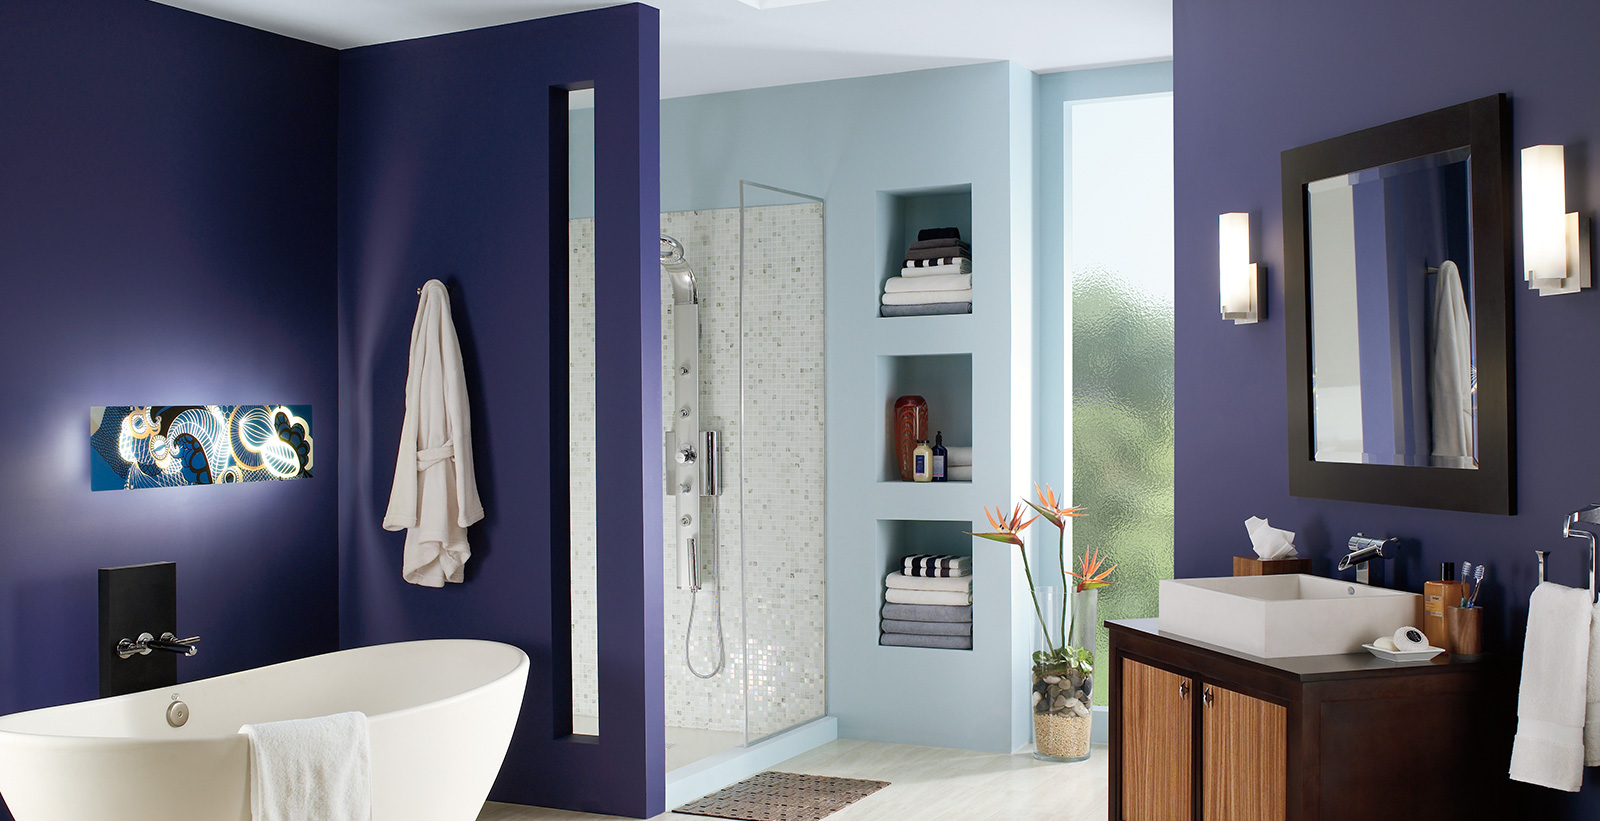 Bold and Dramatic styled bathroom with dark blue and light blue walls, white ceiling, and wooden vanity.